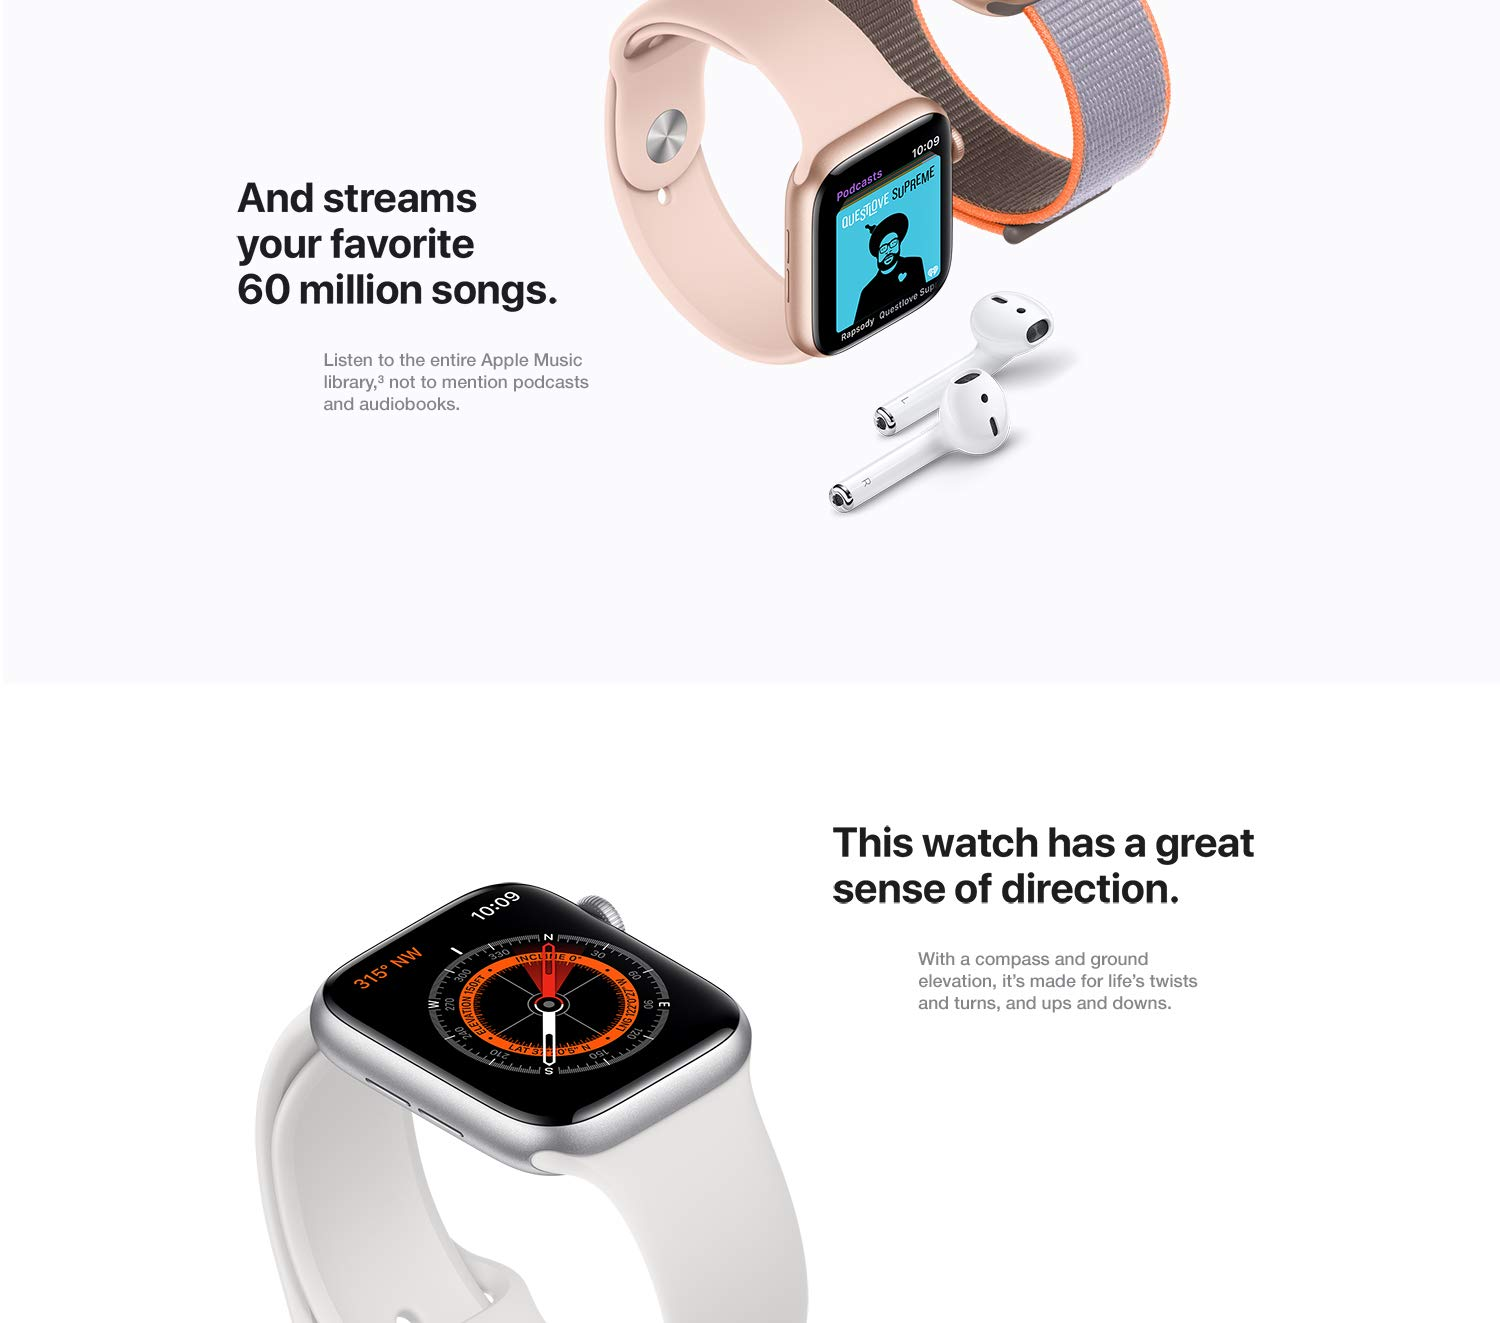 And streams your favorite 50 million songs. Listen to the entire Apple Music library, not to mention podcasts and audiobooks. This watch has a great sense of direction. With a compass and ground elevation, it's made for life's twists and turns, and ups and downs.